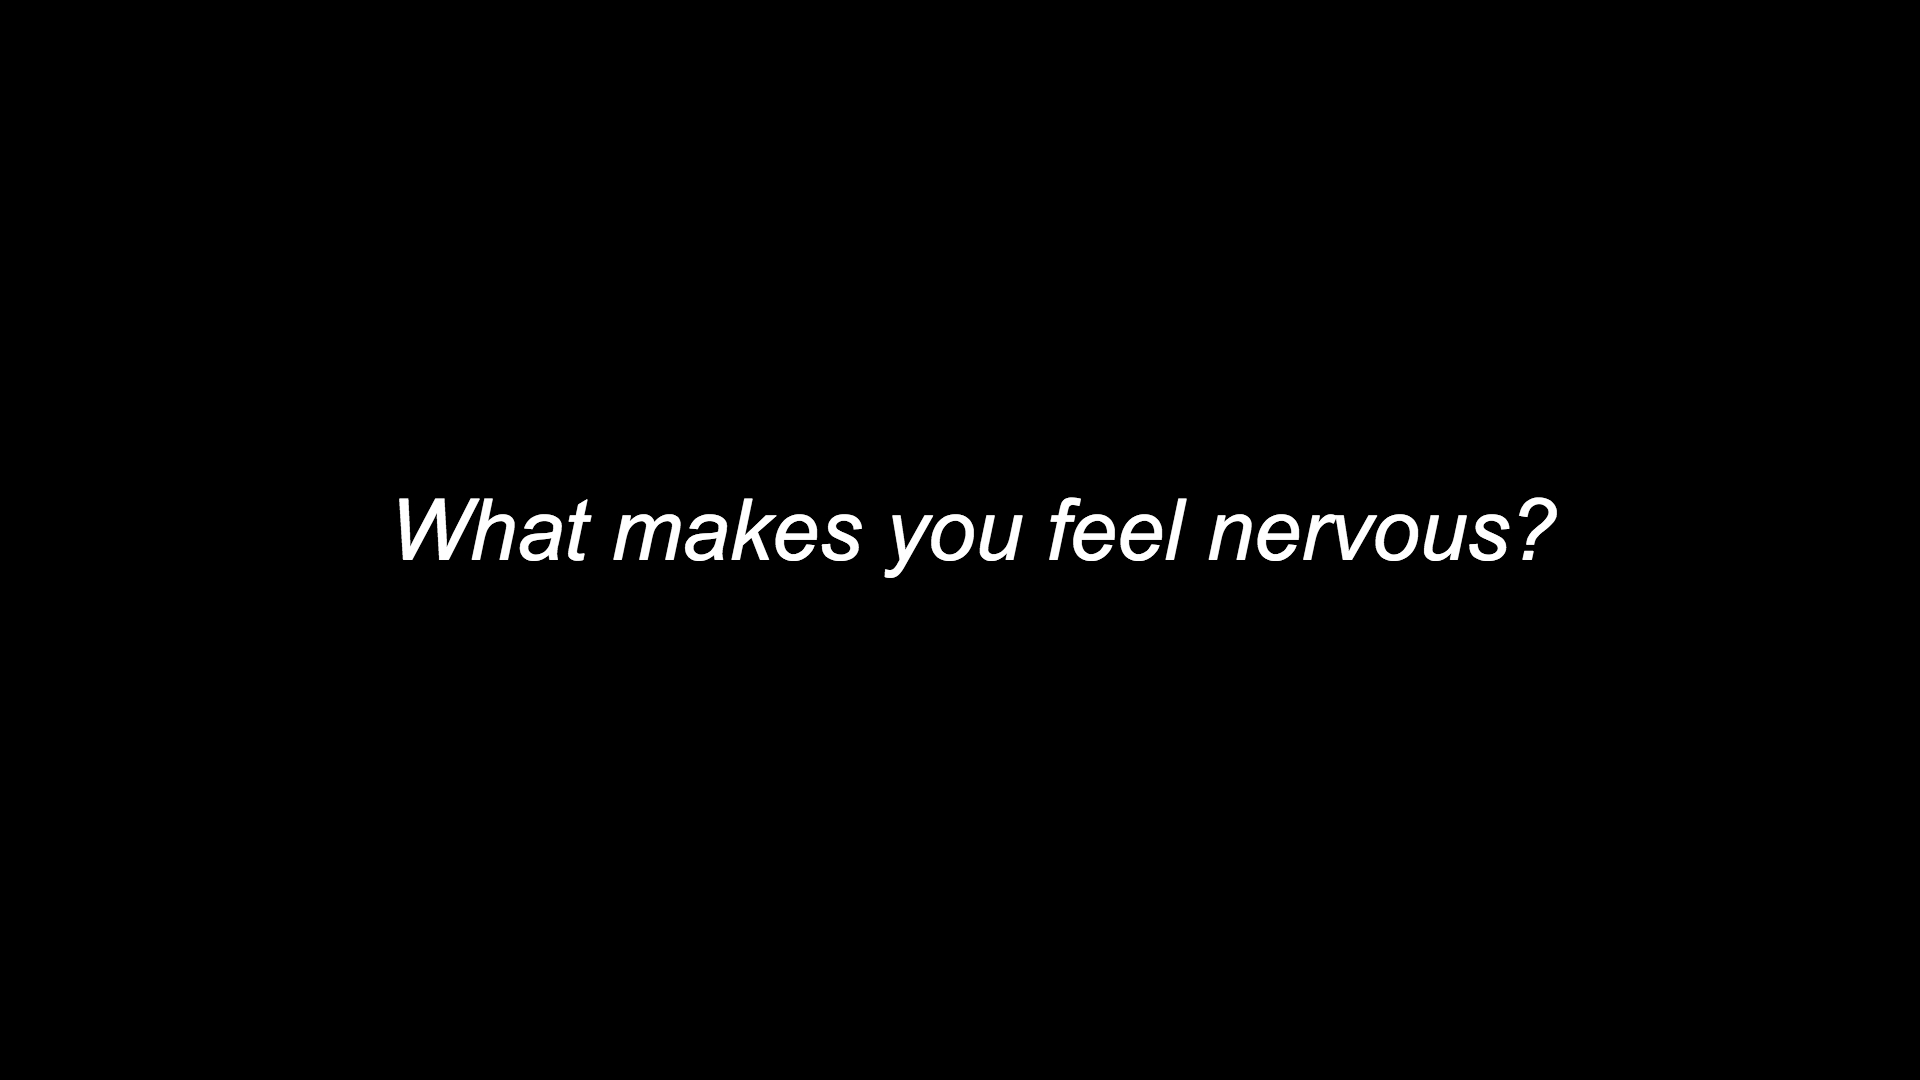 BIG What makes you feel nervous .jpg